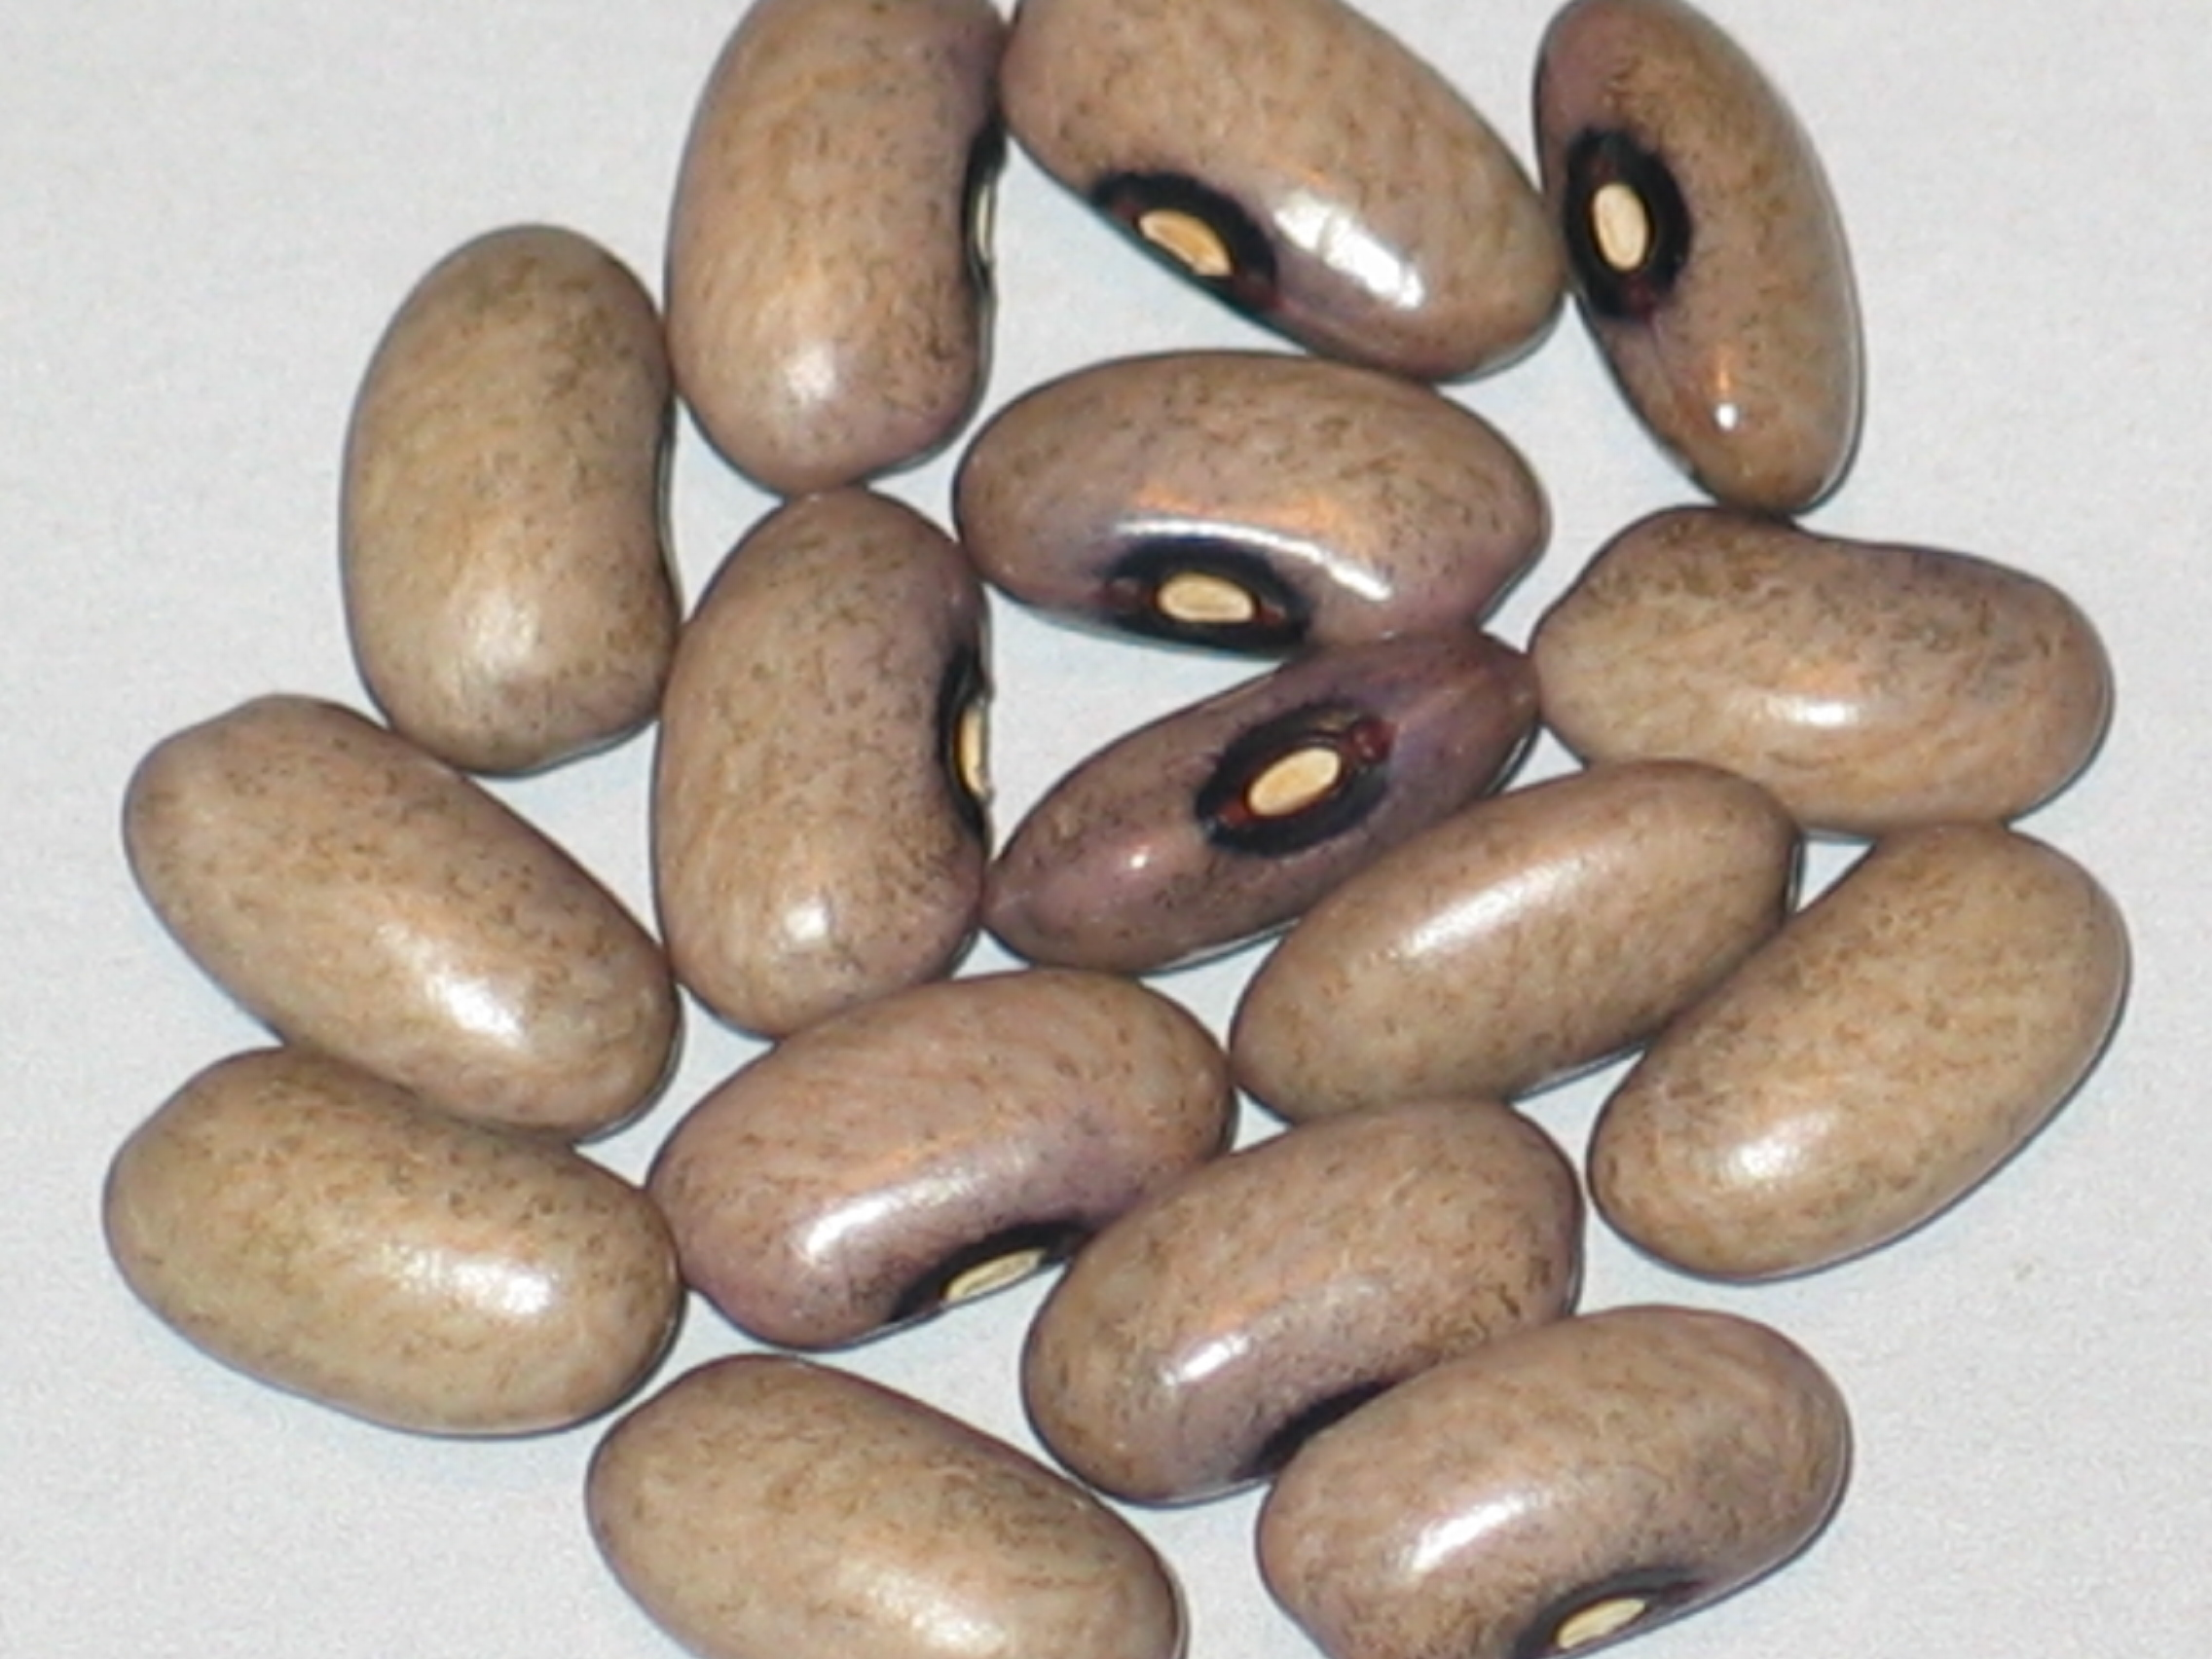 image of Green Savage beans